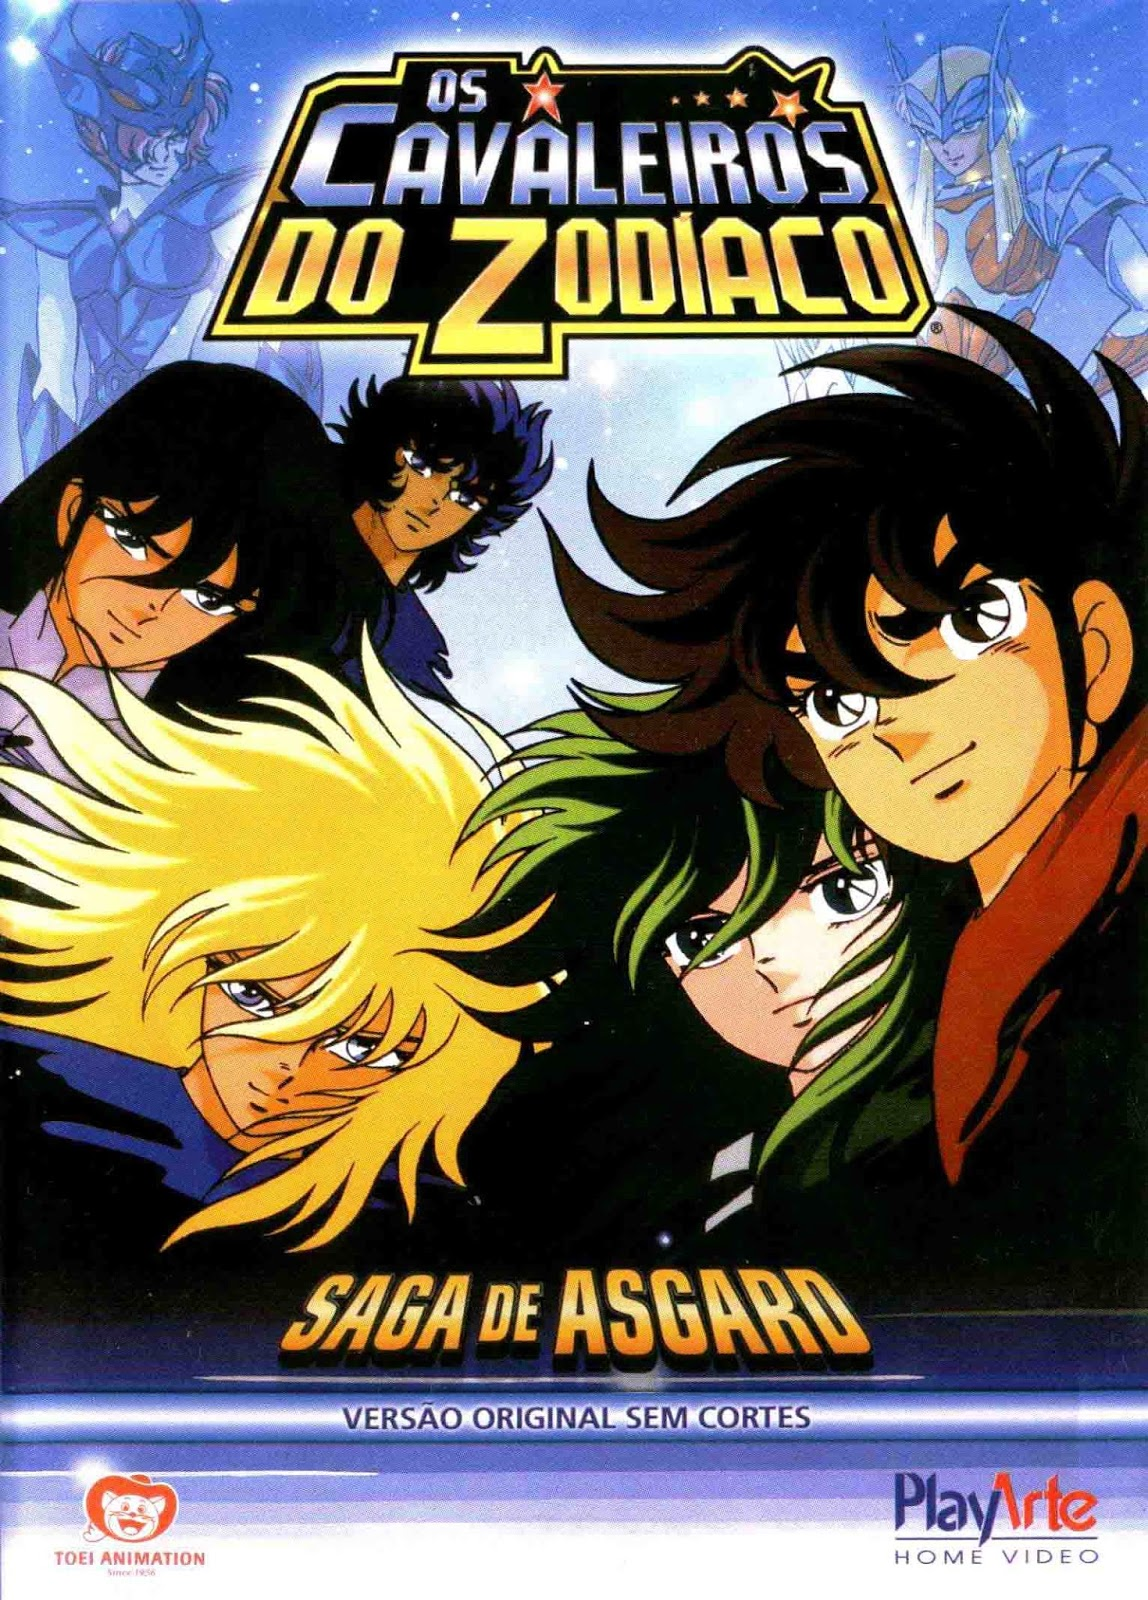 Os Cavaleiros do Zodíaco: Saga de Asgard – Parte 2 Torrent – BluRay 1080p Dual Áudio